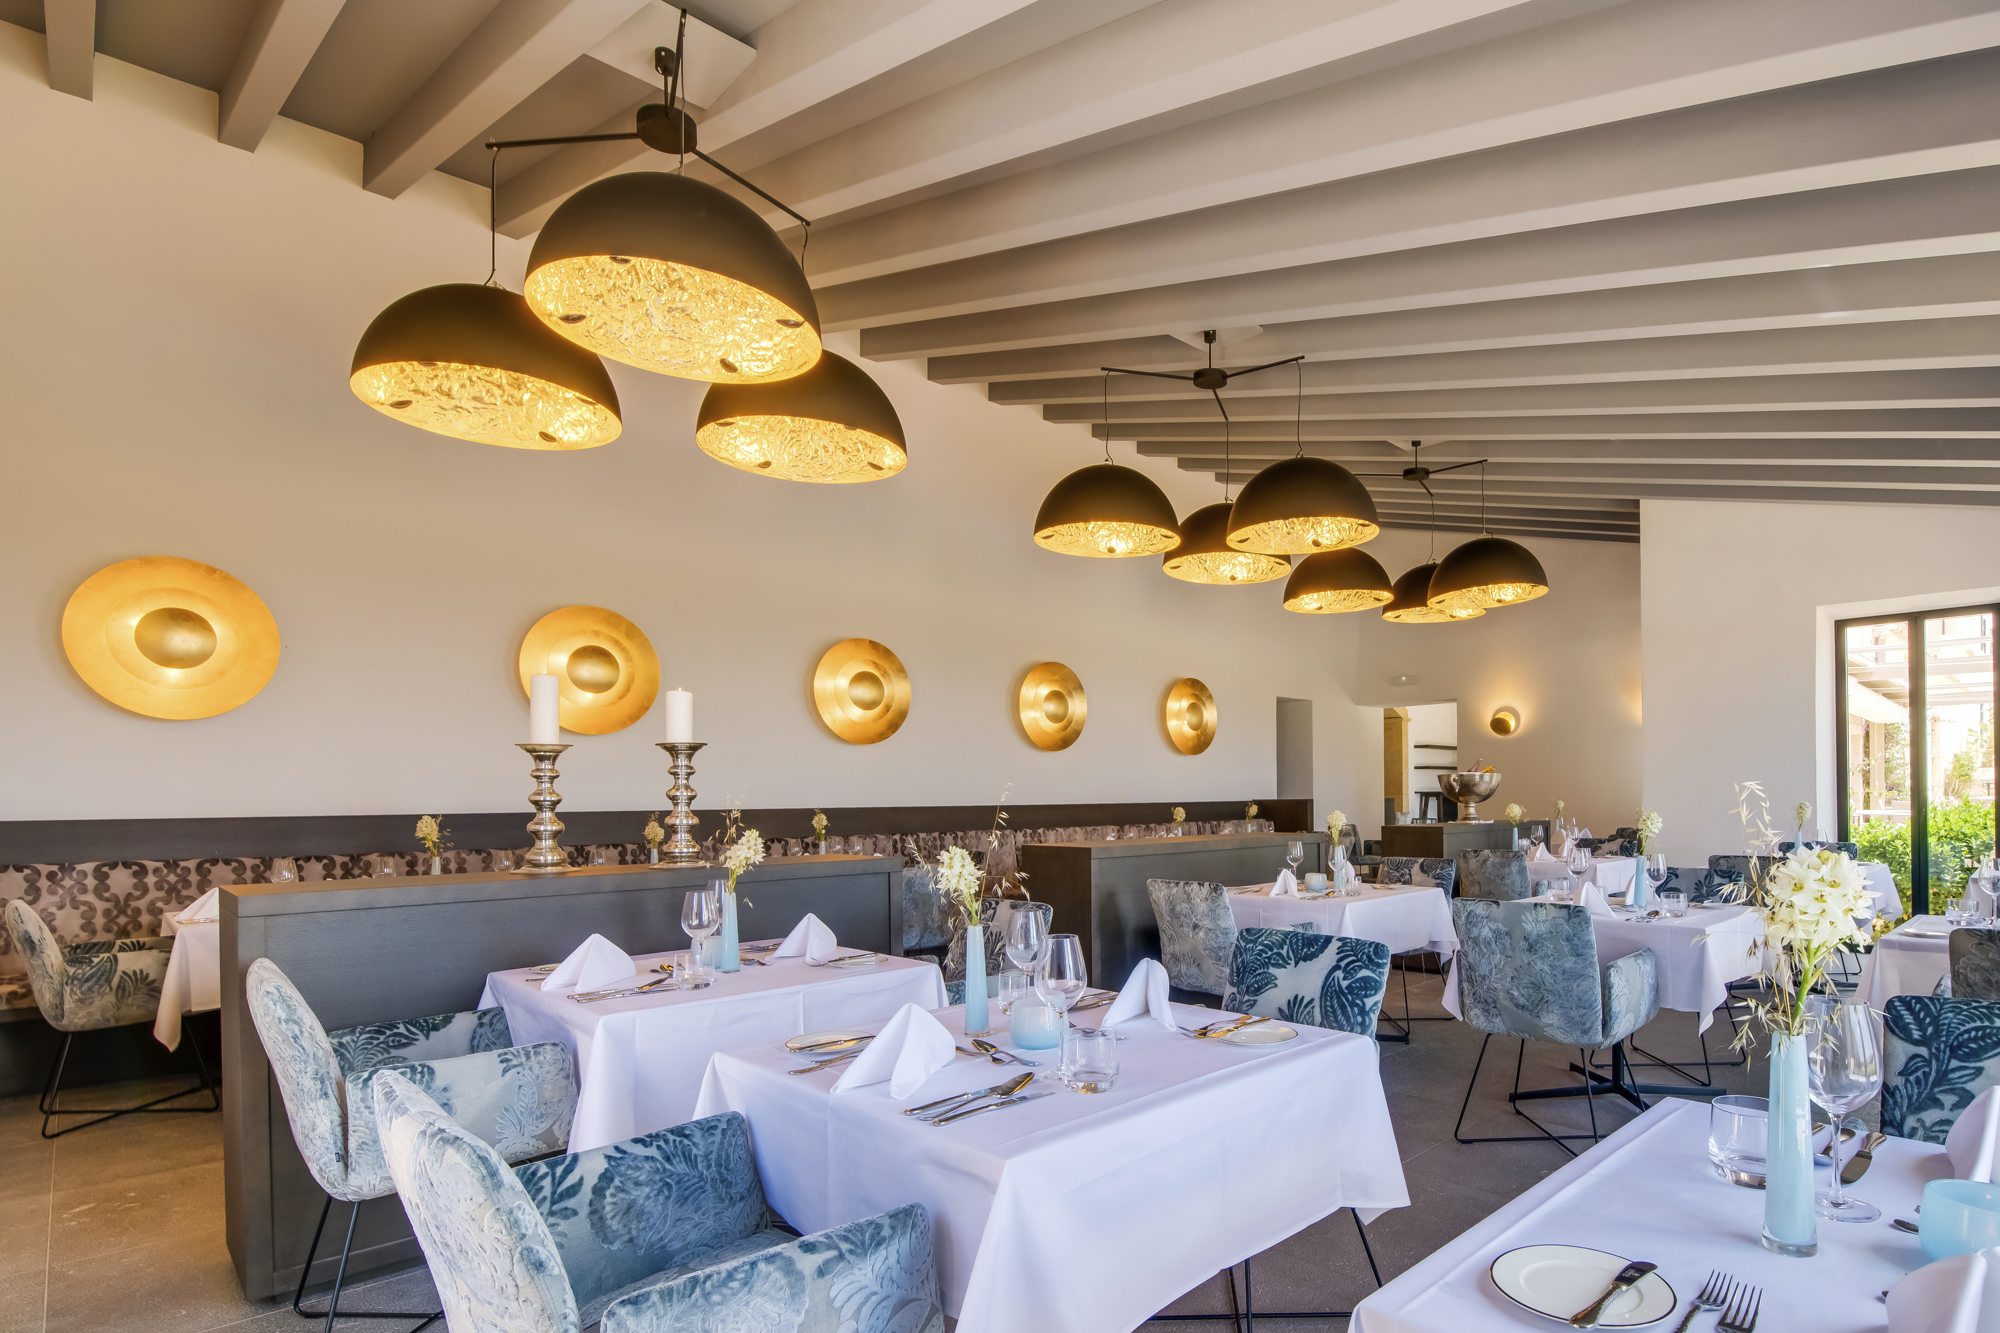 Catellani&Smith: Carrossa Hotel Spa Villas